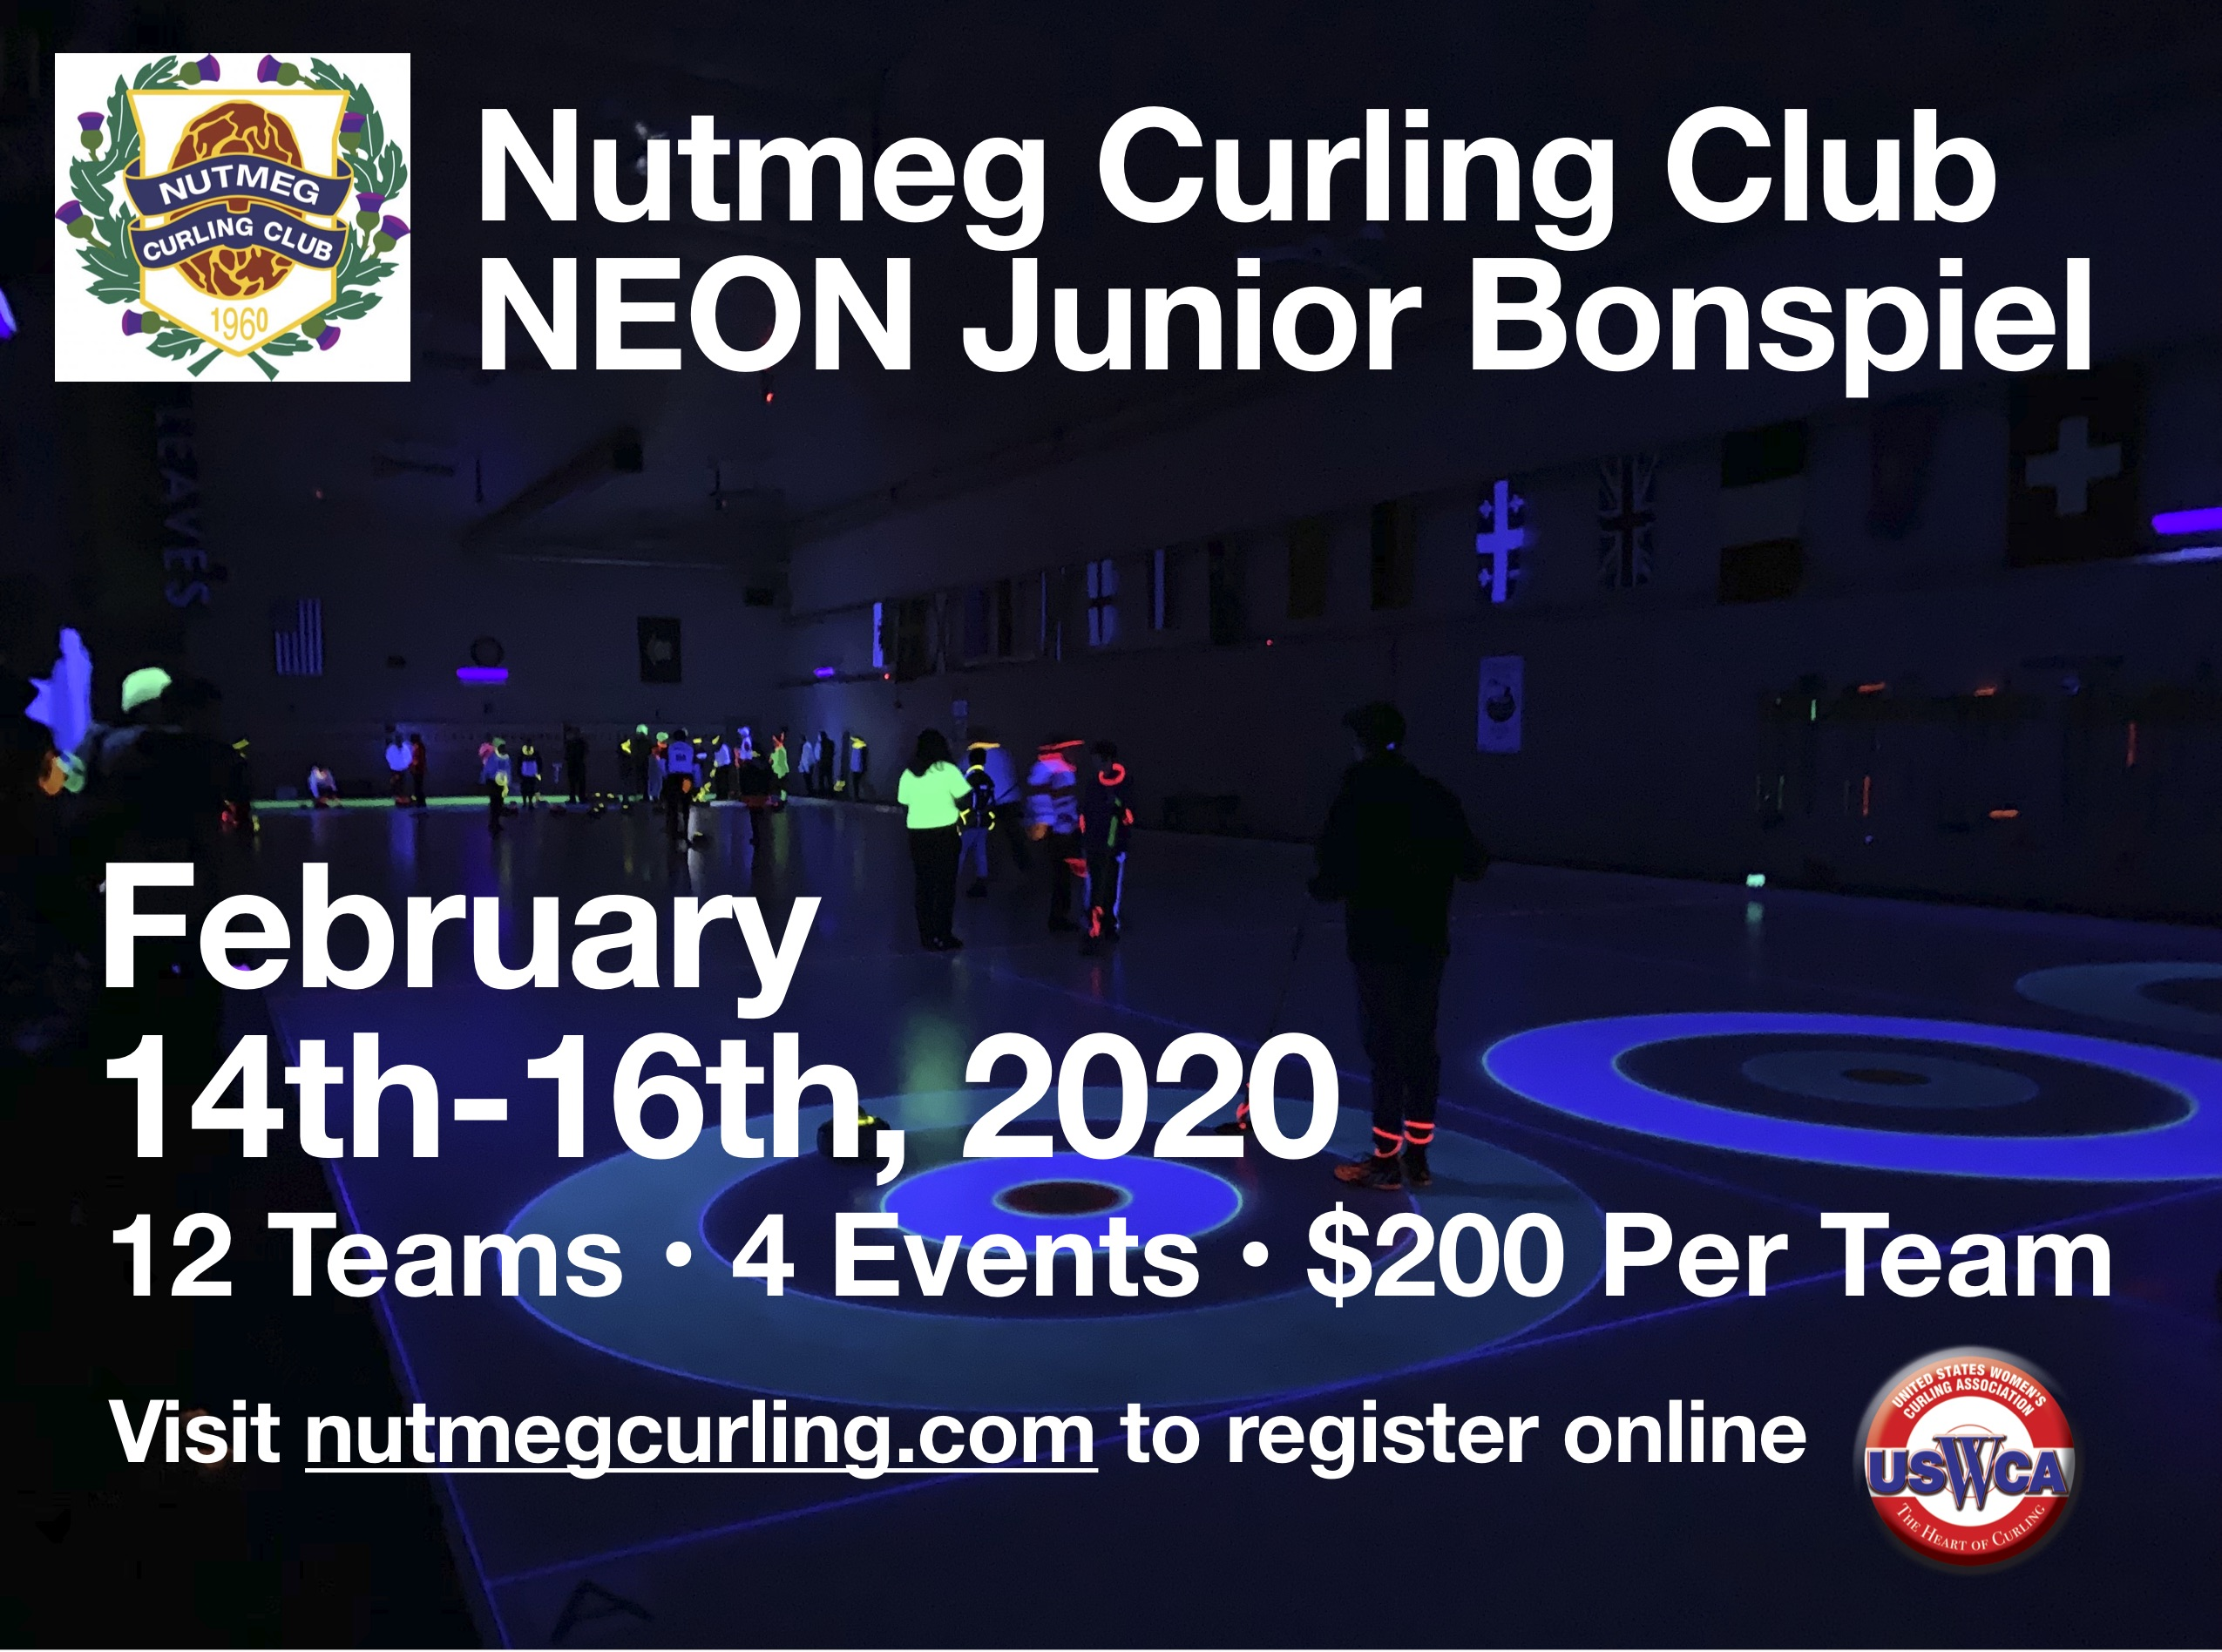 2020 neon junior bonspiel flyer uswca logo